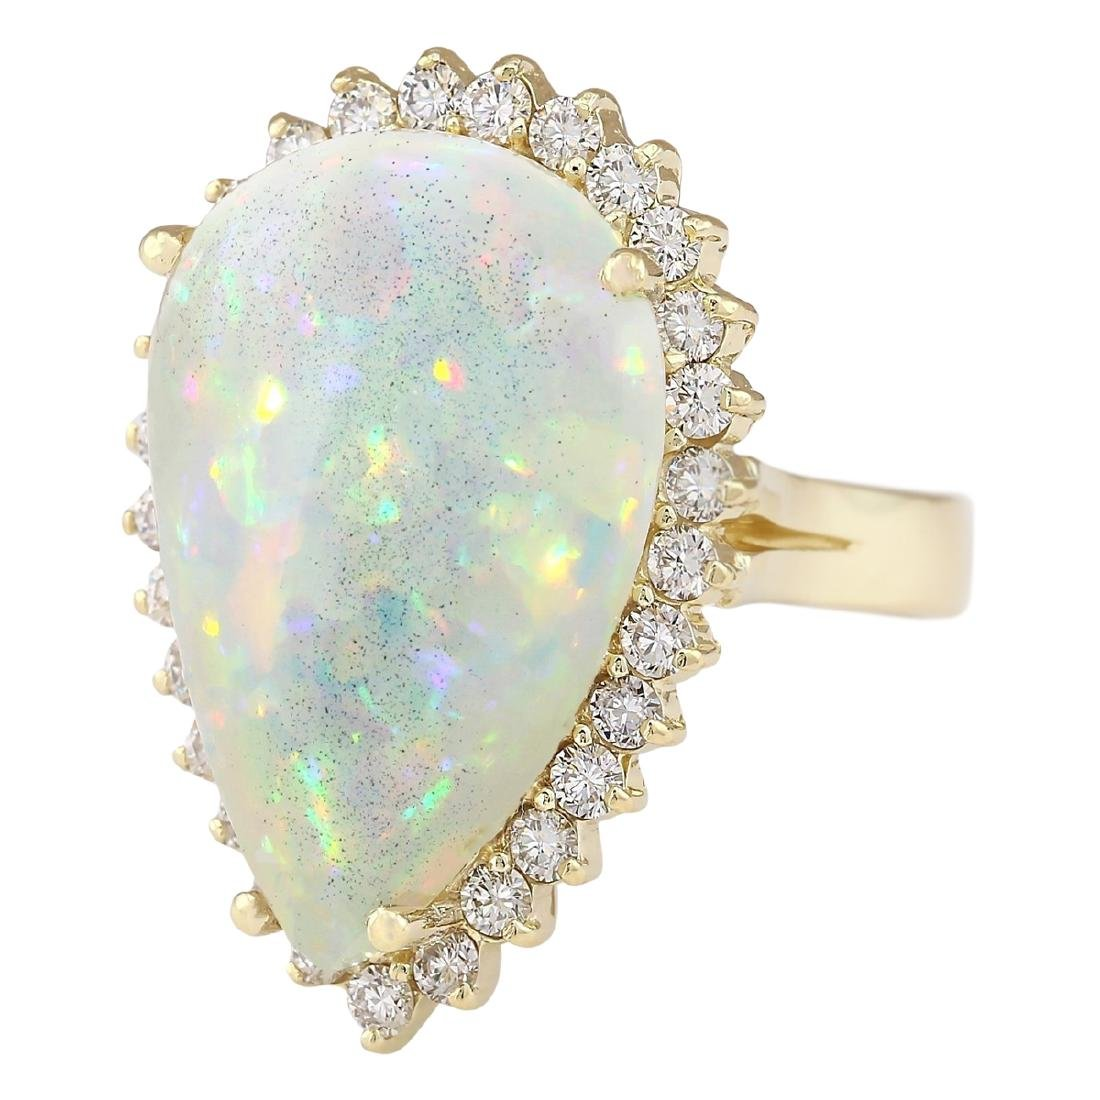 14.02 CTW Natural Opal And Diamond Ring In 18K Yellow - 2